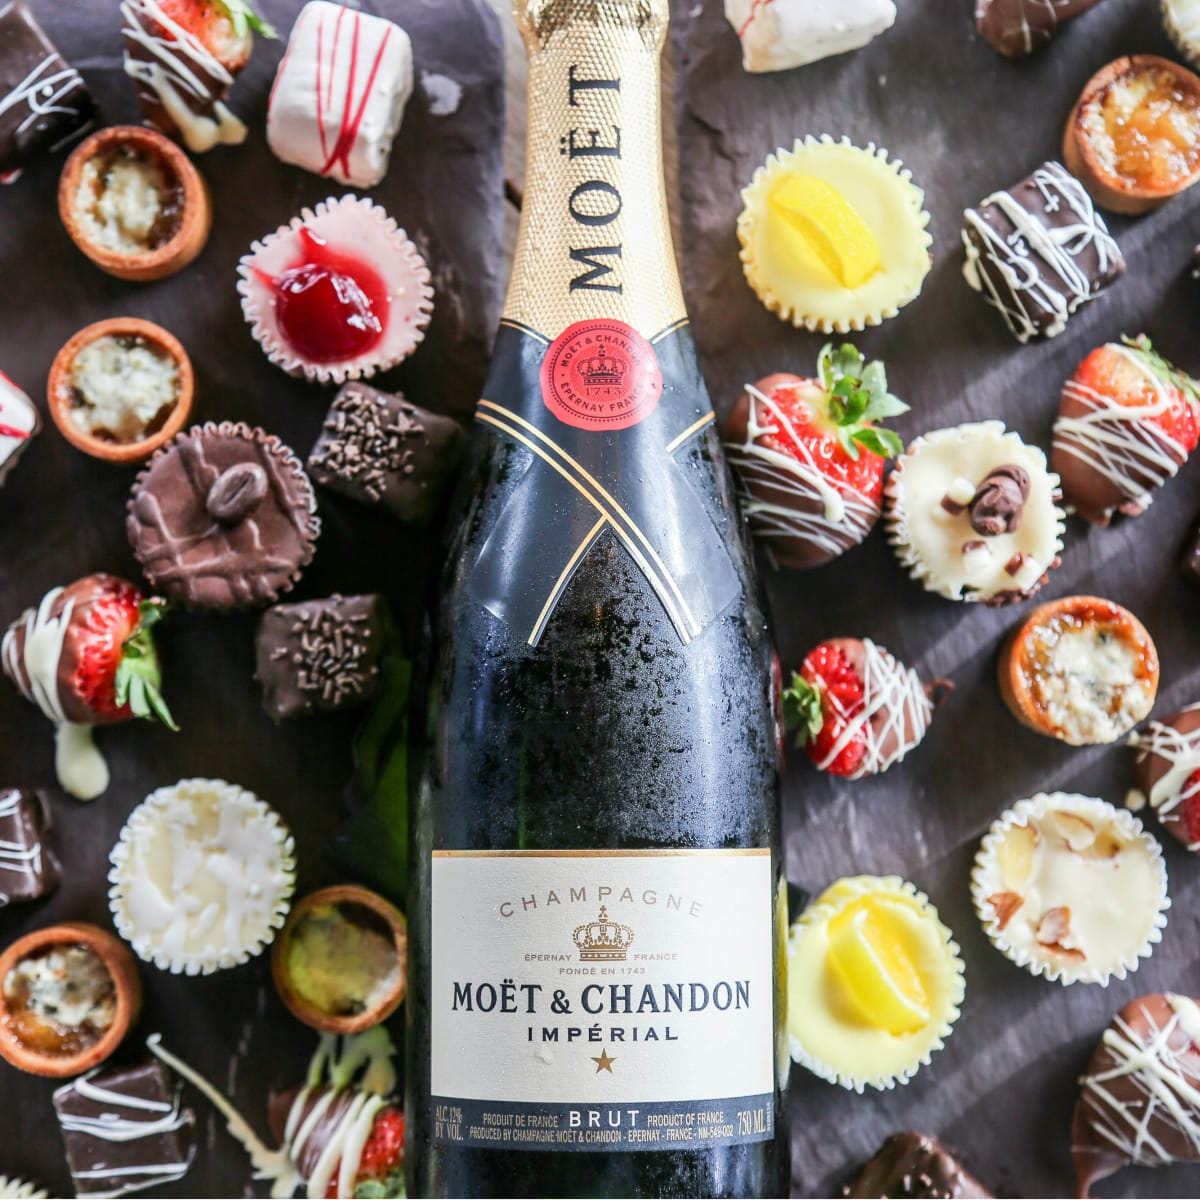 Champagne and desserts